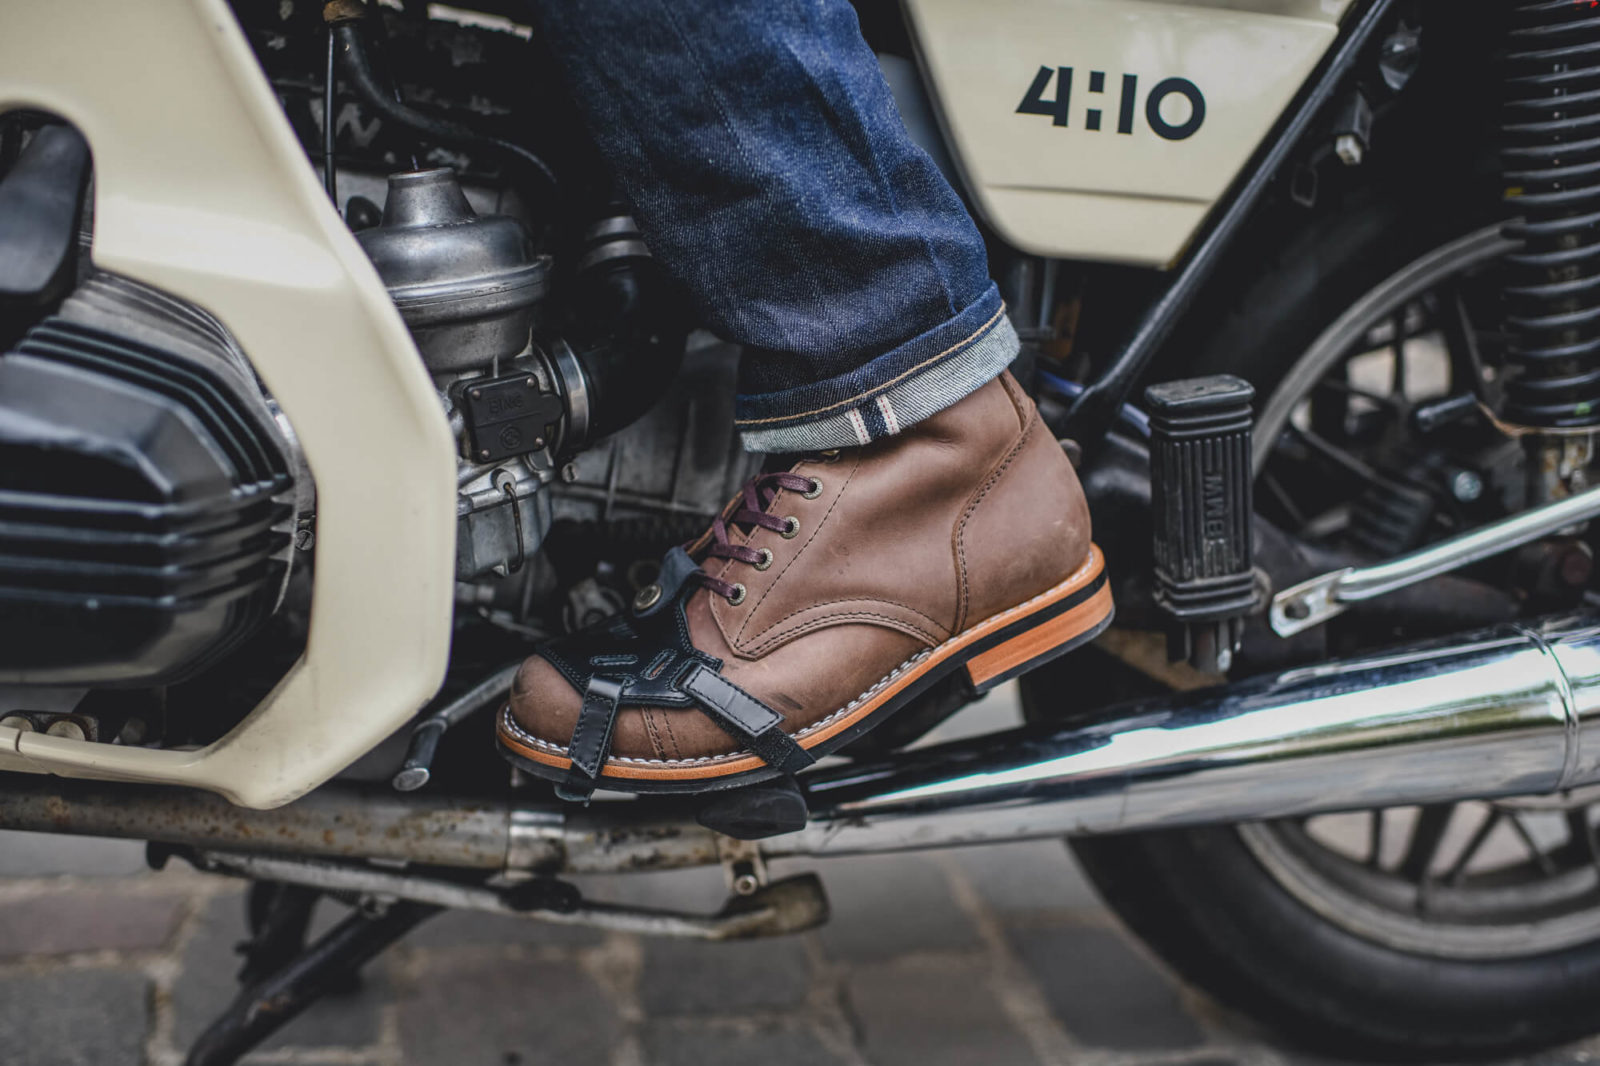 ortodoux helston chaussure moto vintage cafe racer